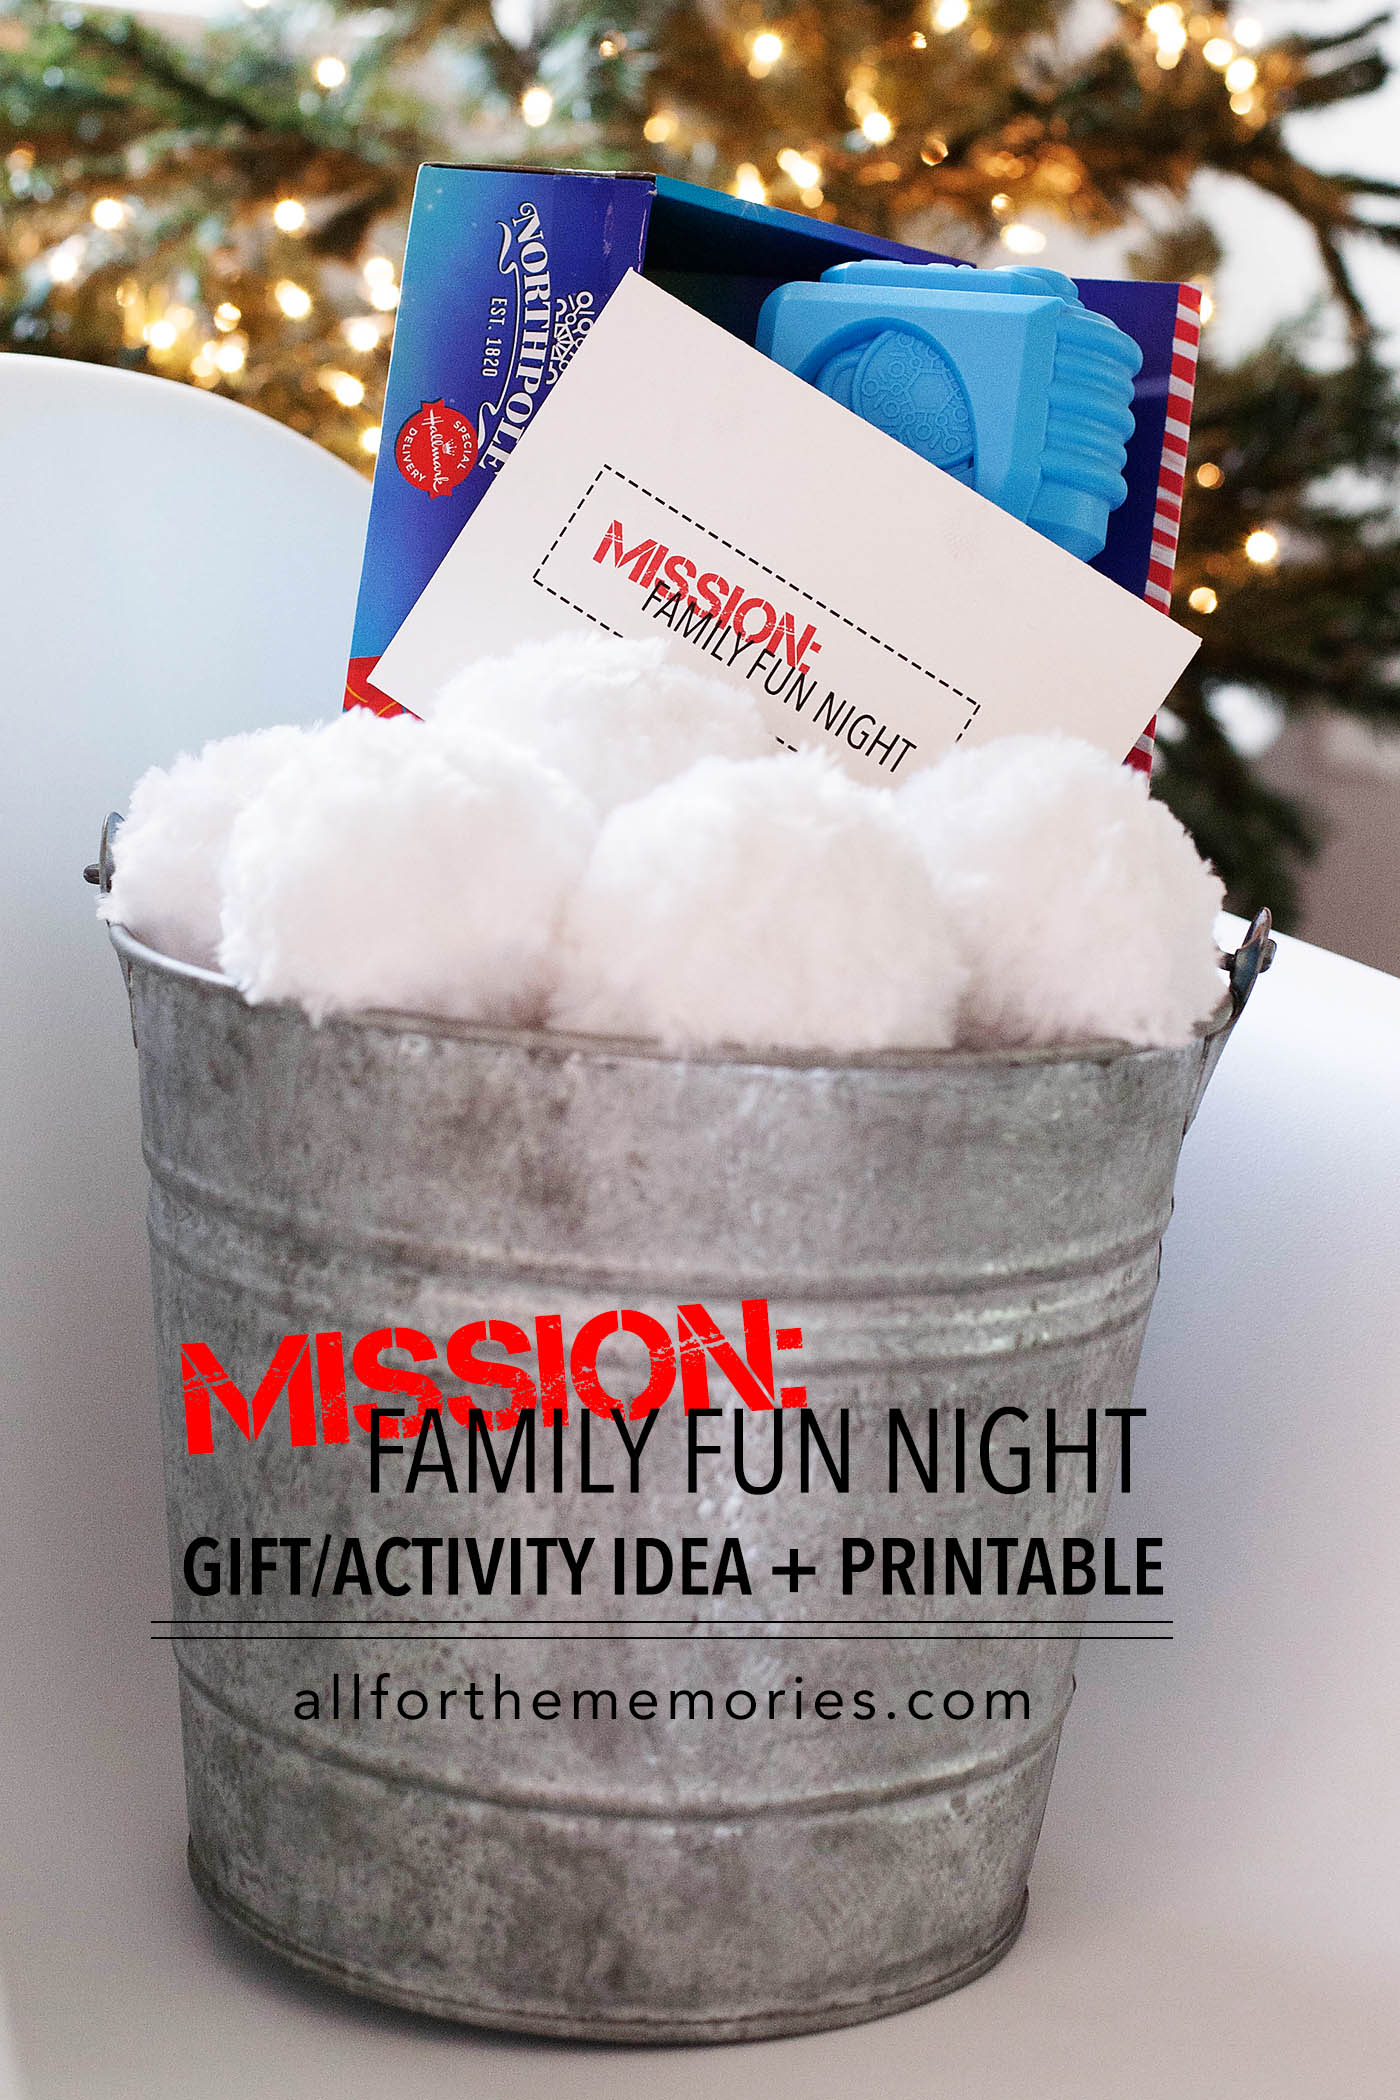 Mission: Family fun night gift/activity idea + printable!